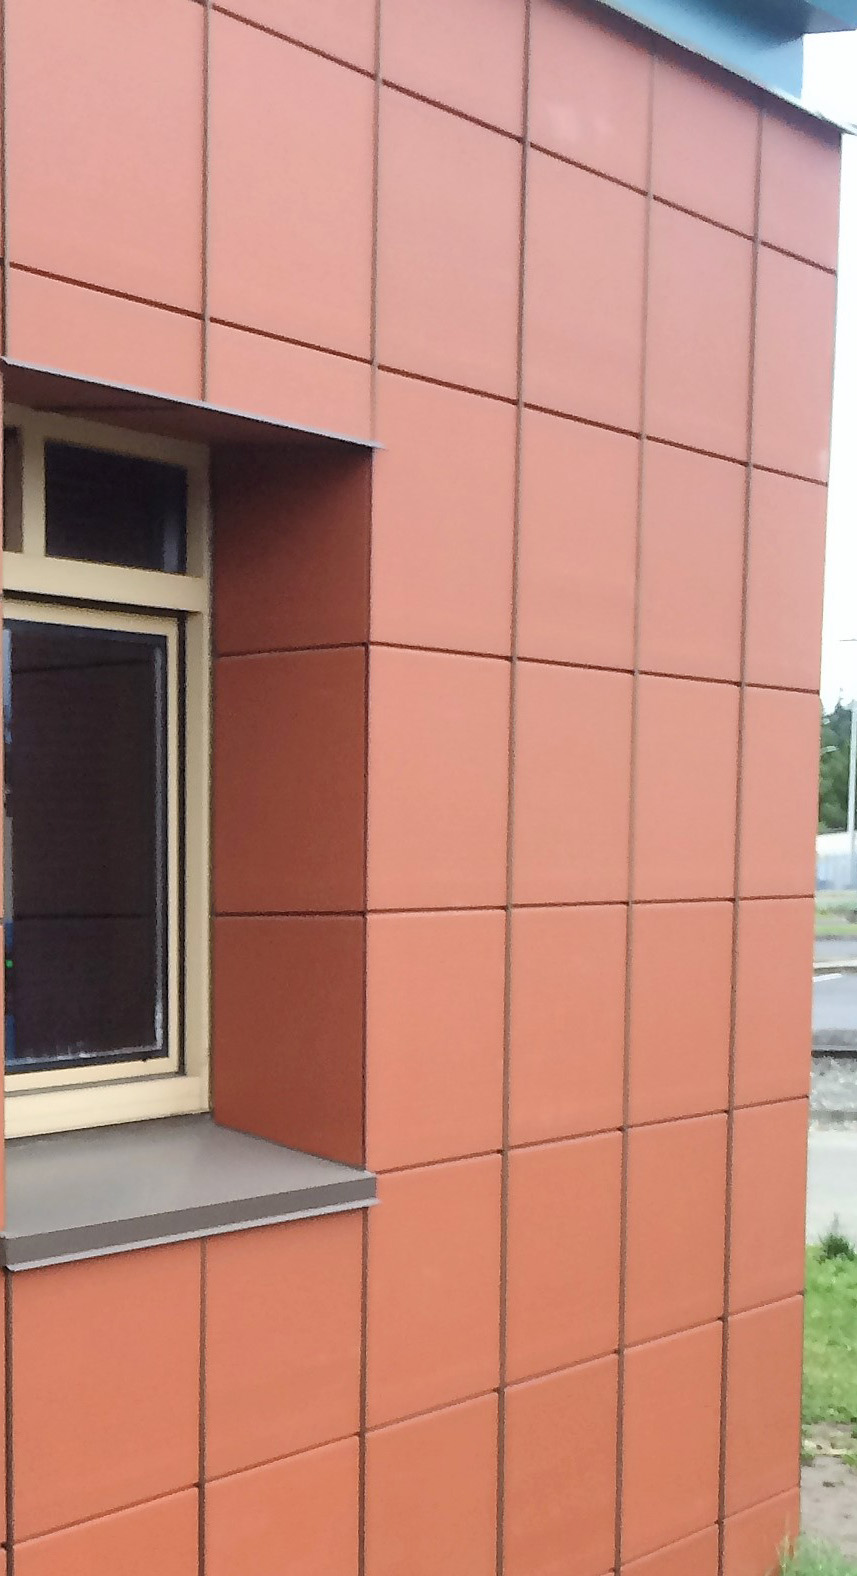 Cladding Corp Terracotta Rainscreen & ECO Cladding Vci.45 Subframing Cladding System